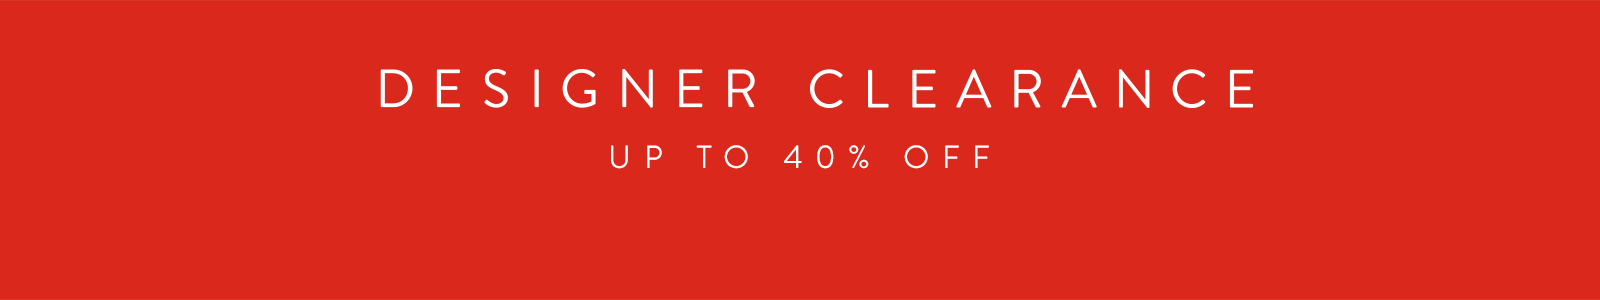 Designer Clearance Sale. Up to 40% off designer collections for women, men and kids.